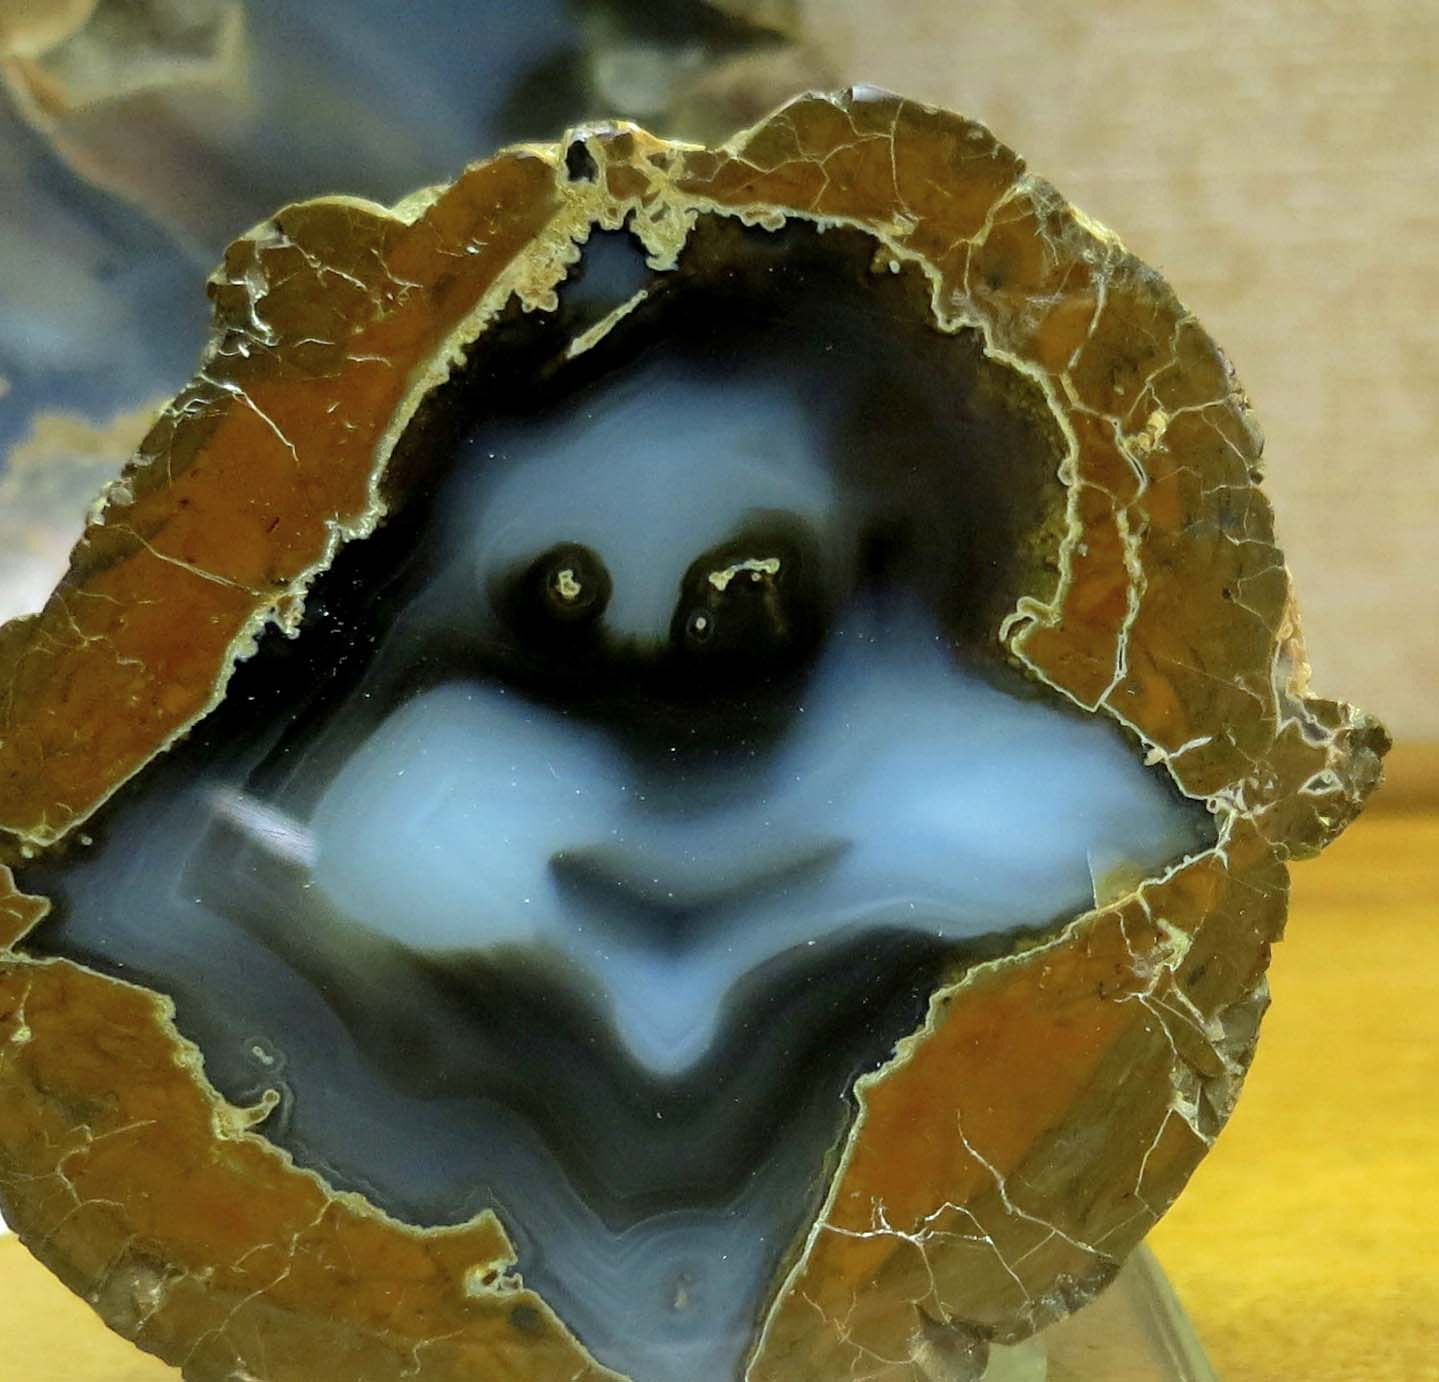 A thunder egg displaying Caspar the Friendly Ghost at Crater Rock Museum in Central Point, Oregon. Photo by Curtis Mekemson.